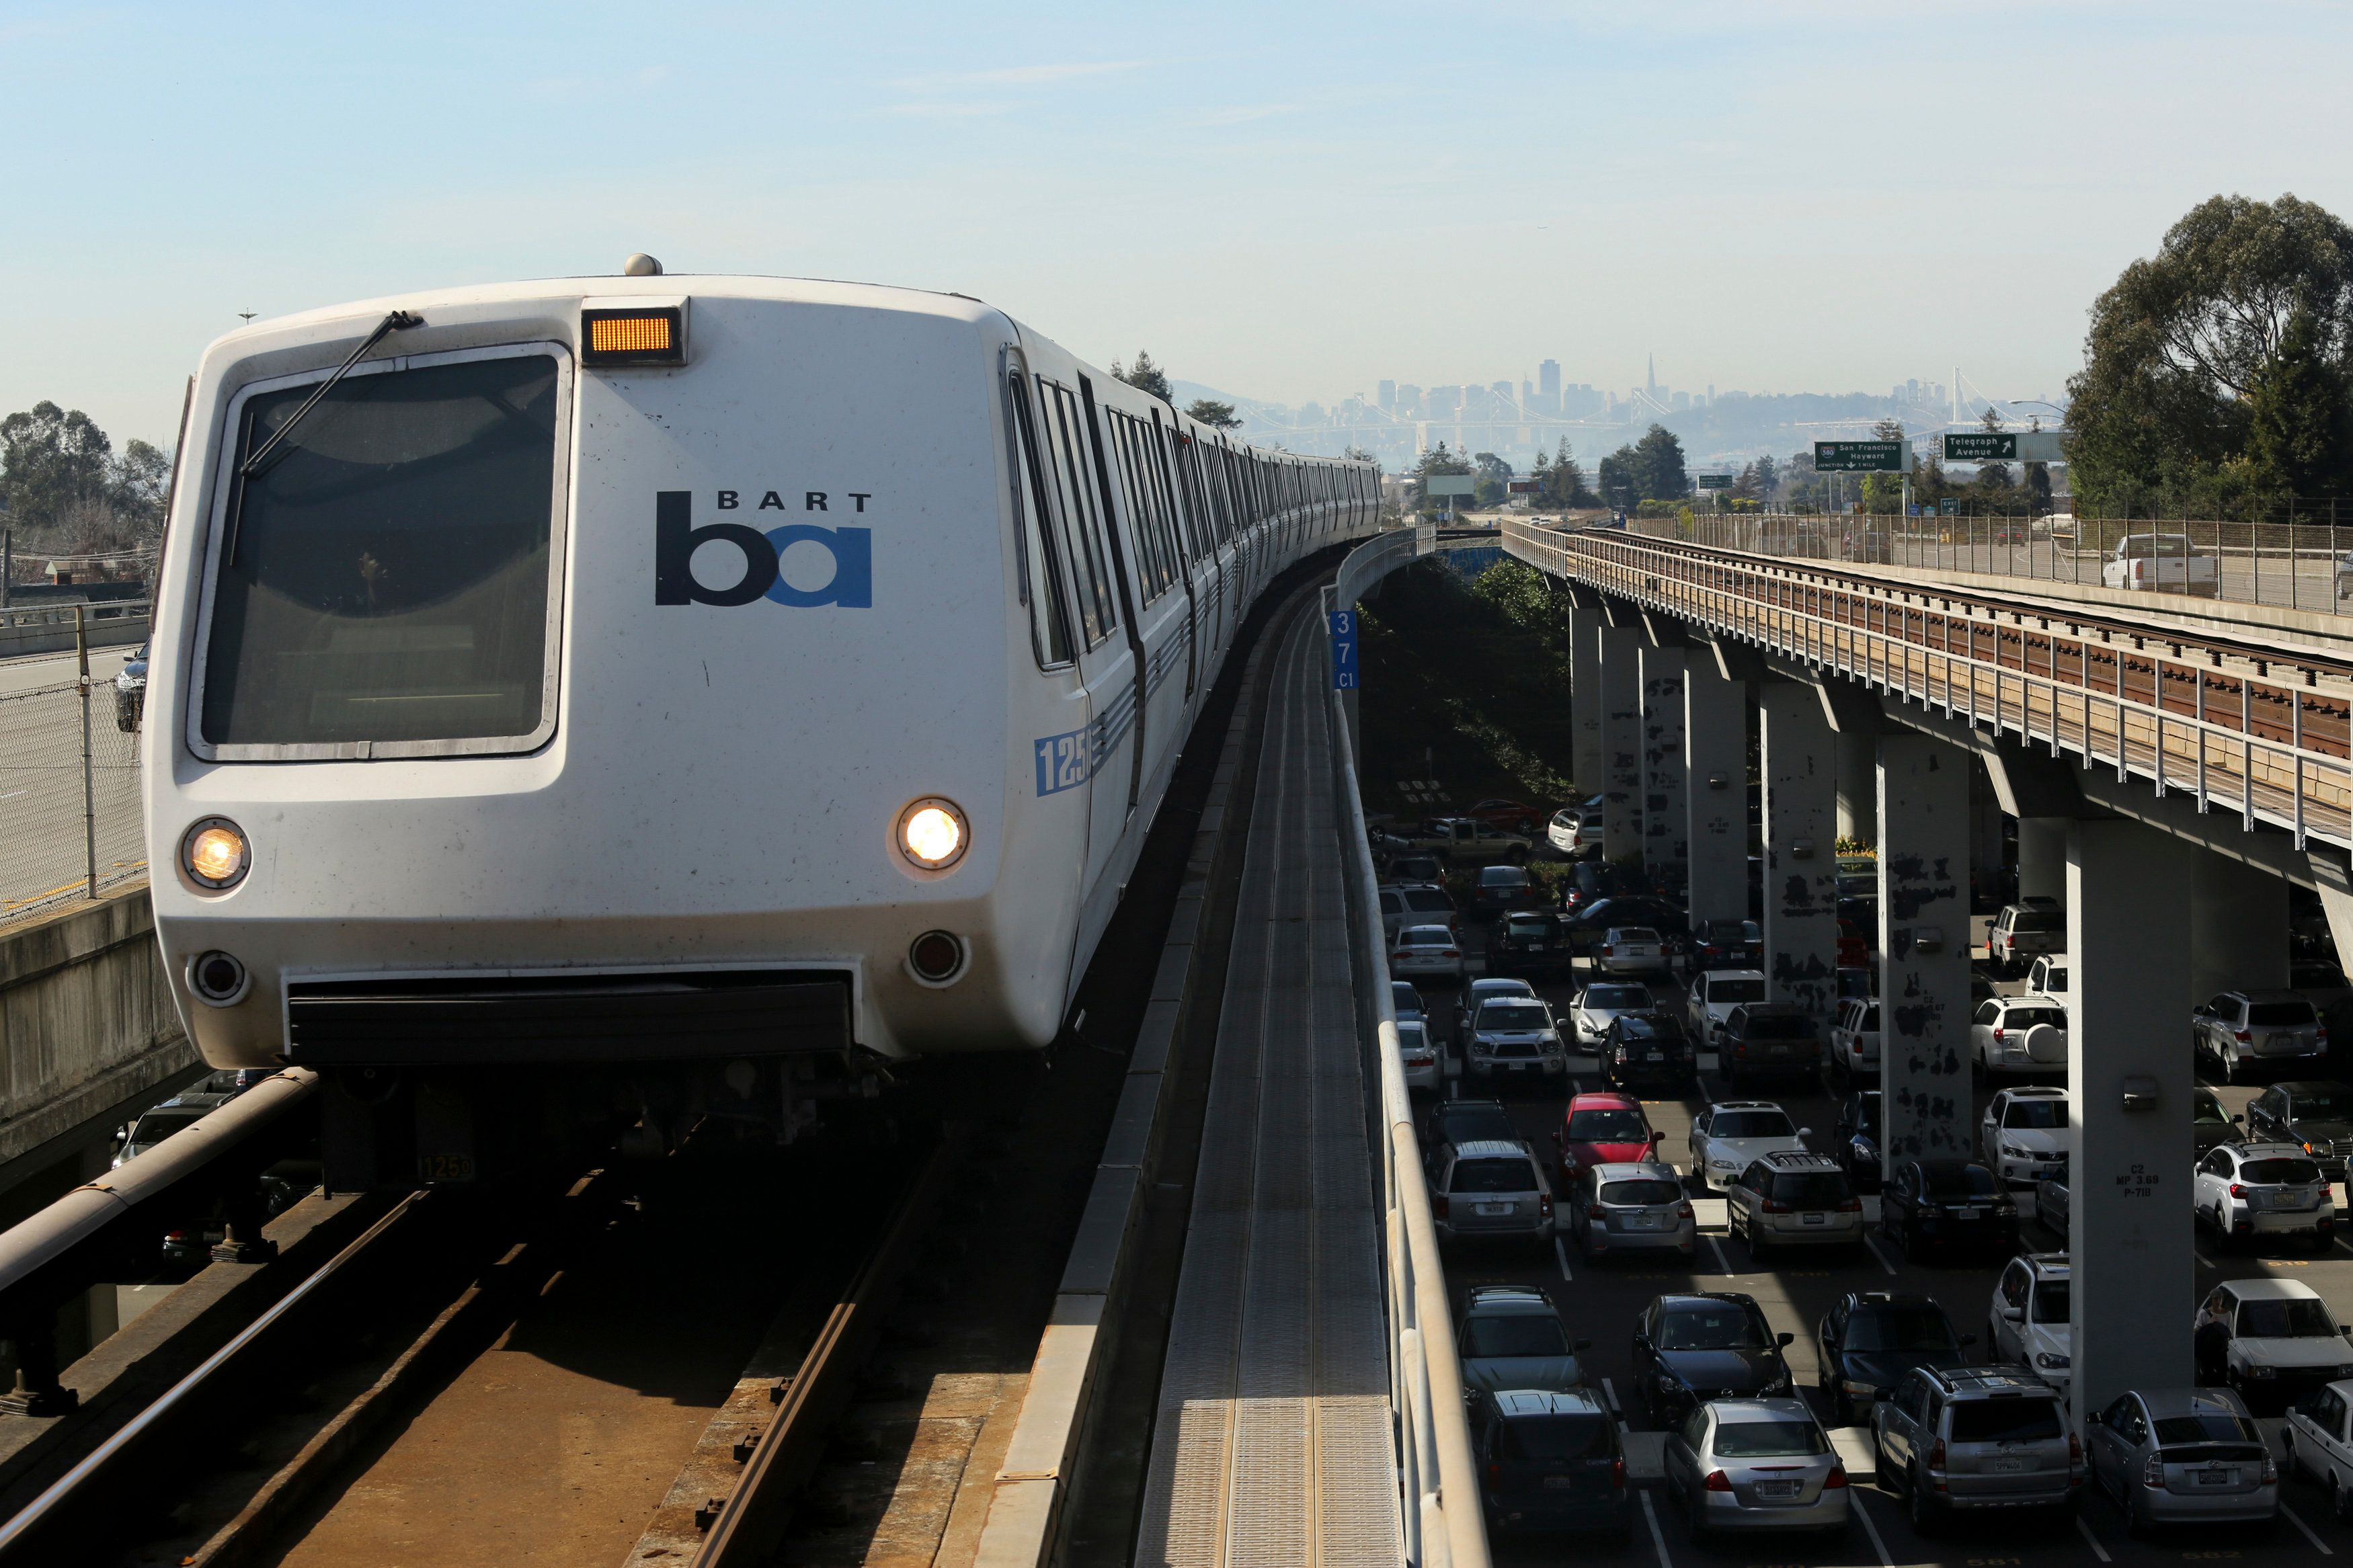 A Bay Area Rapid Transit (BART) train enters the platform area at the Rockridge station in Oakland, California.